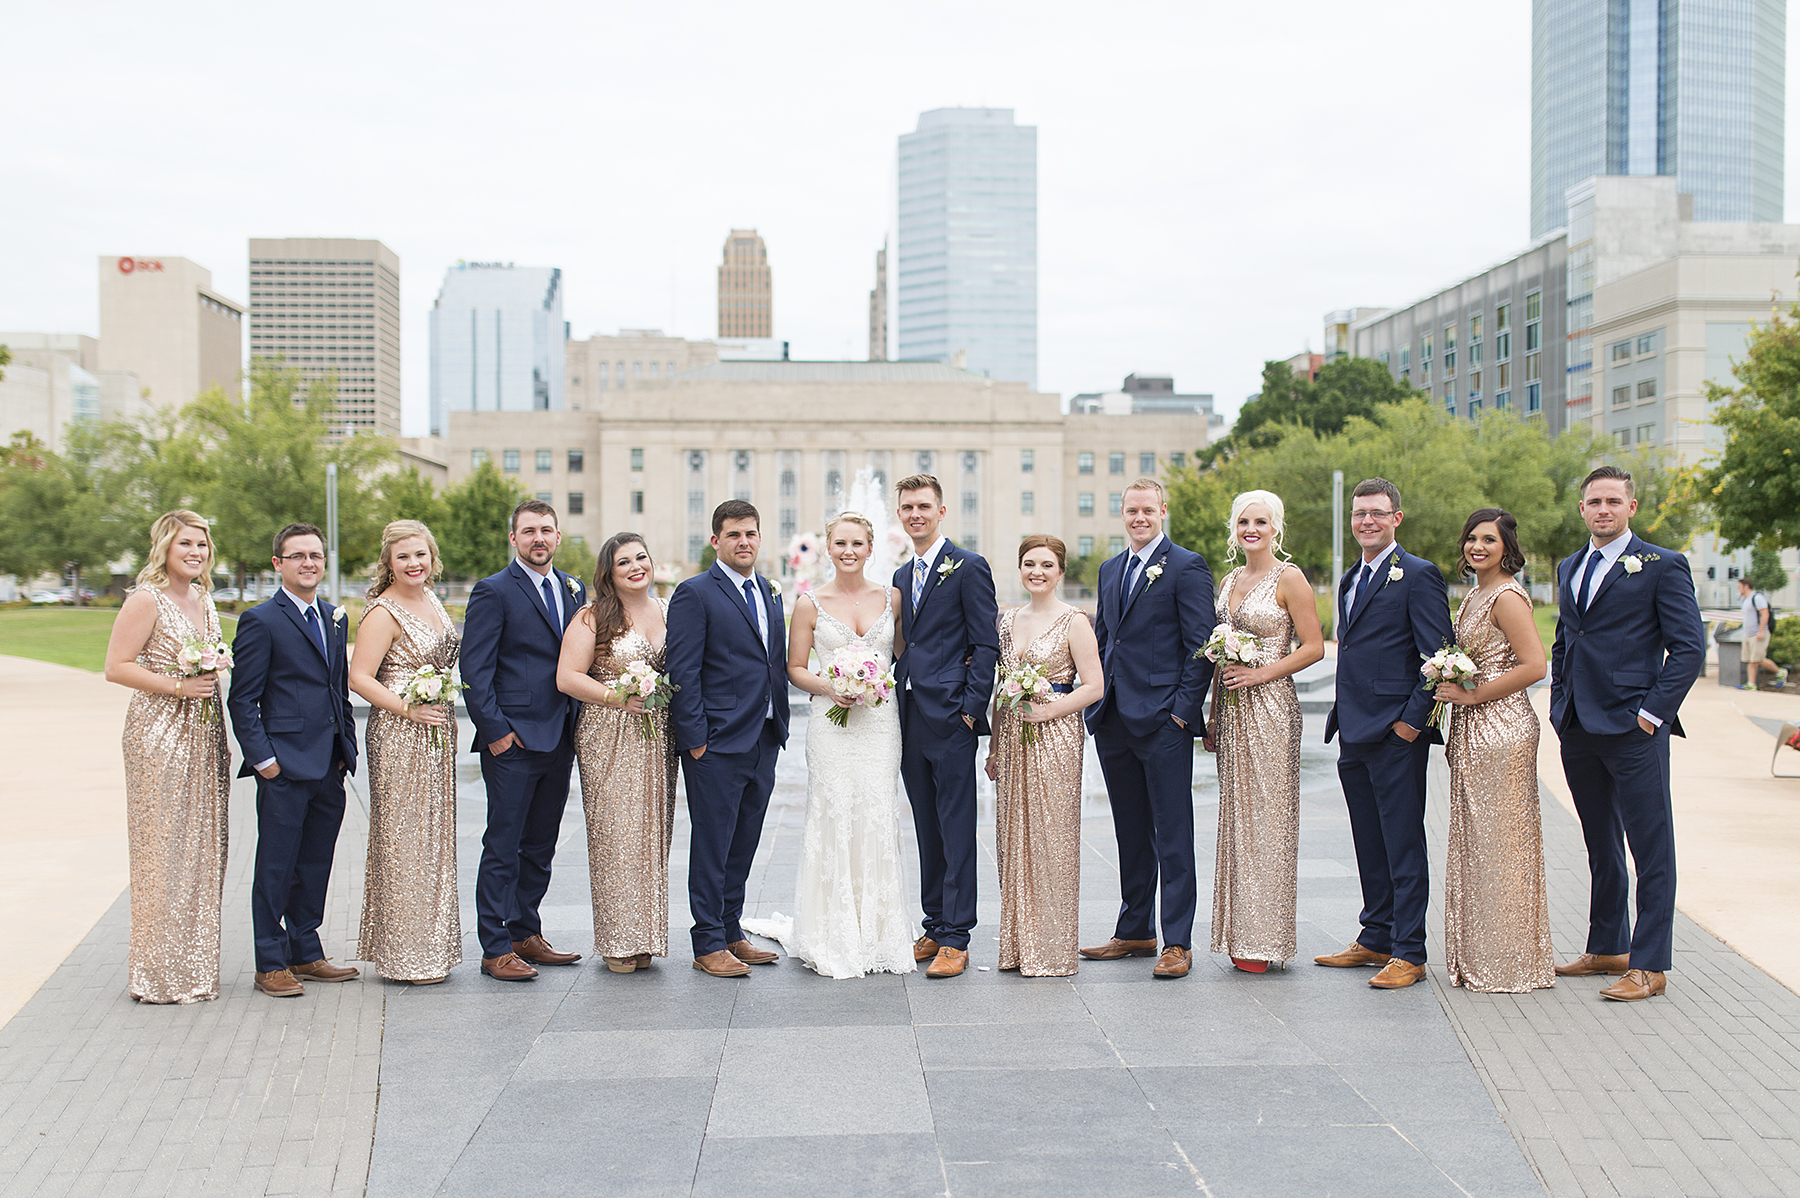 Ely Fair Photography | Oklahoma Wedding | Civic Center Wedding | Gold Bridesmaid Dresses